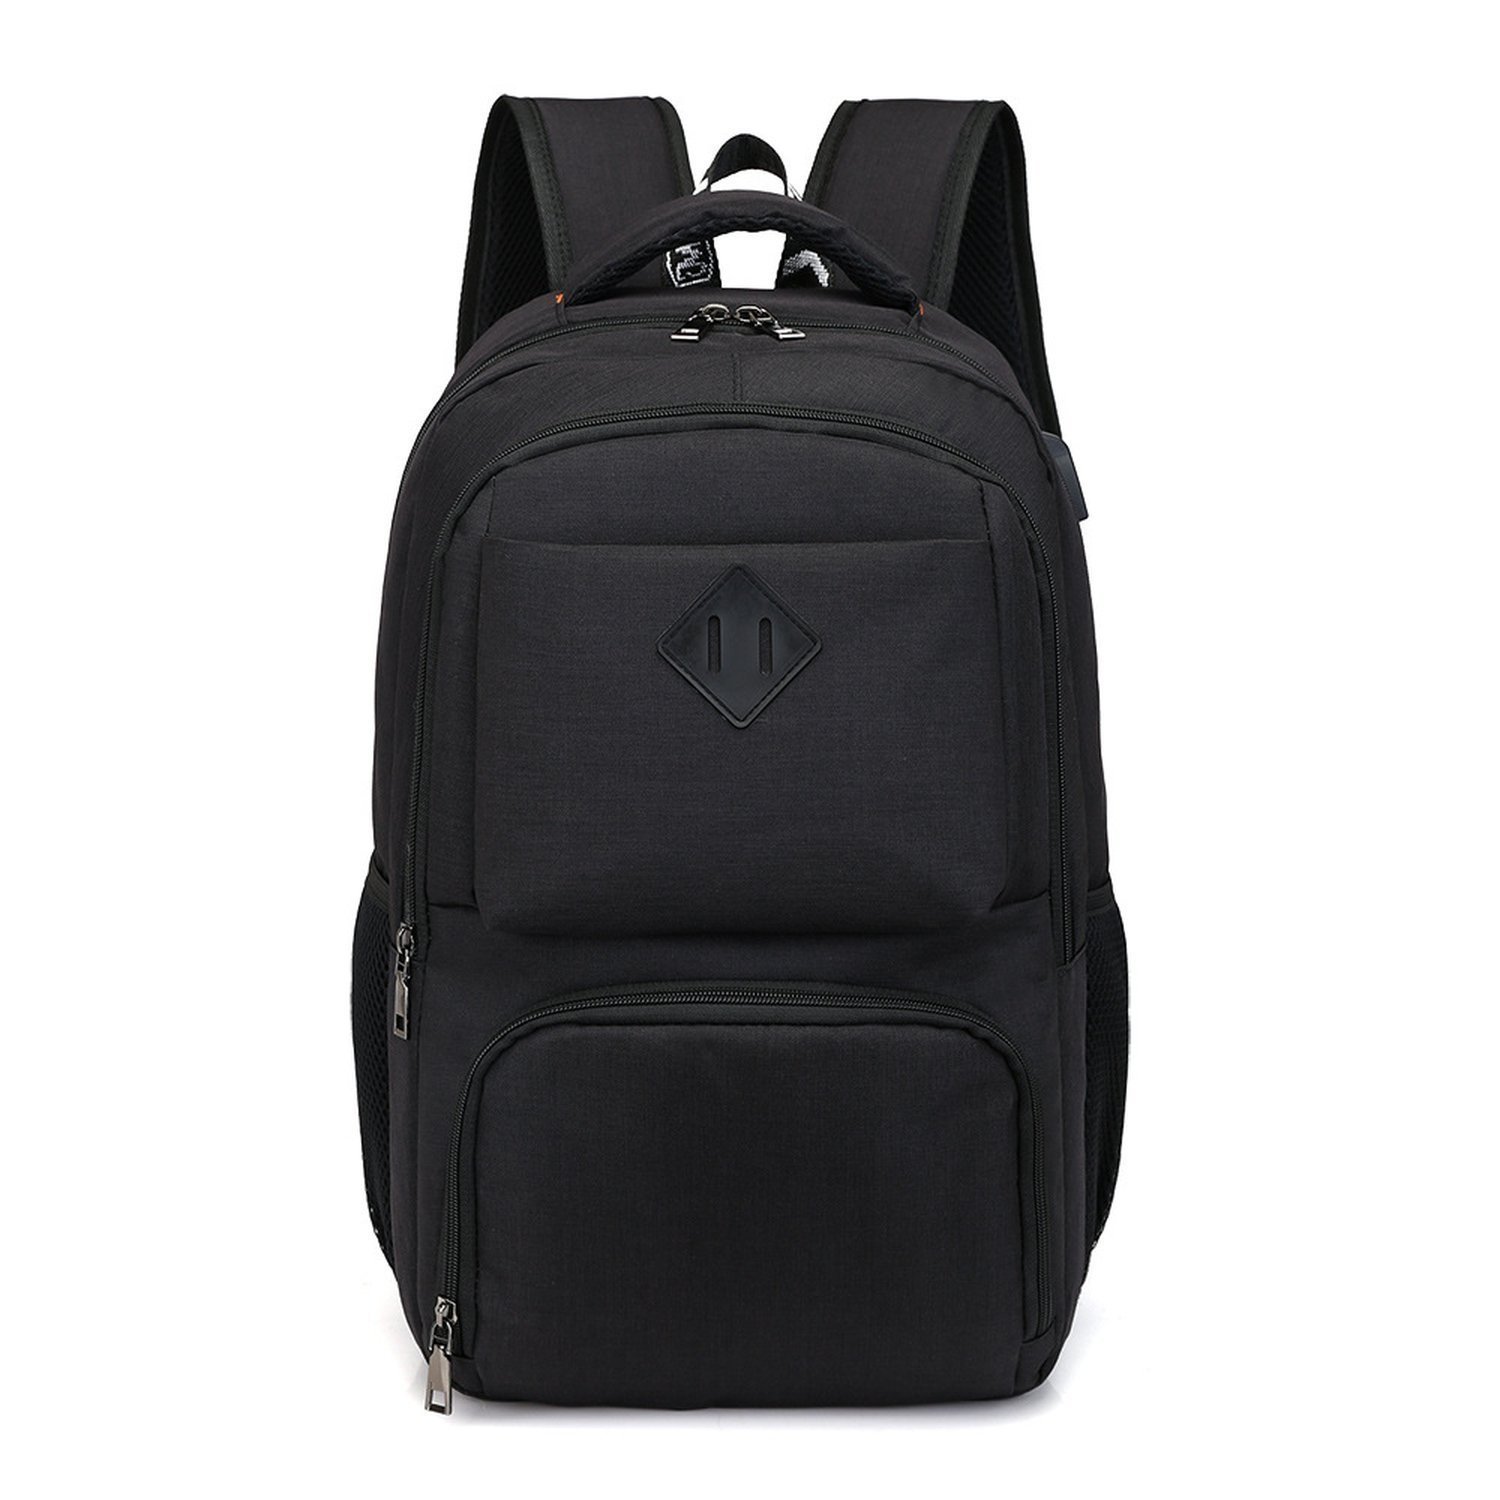 LOKOUO Leisure Business Multi Intelligent Backpack Computer Bag USB Charger Waterproof Travel Backpack Senior College Student Book.Gray-black